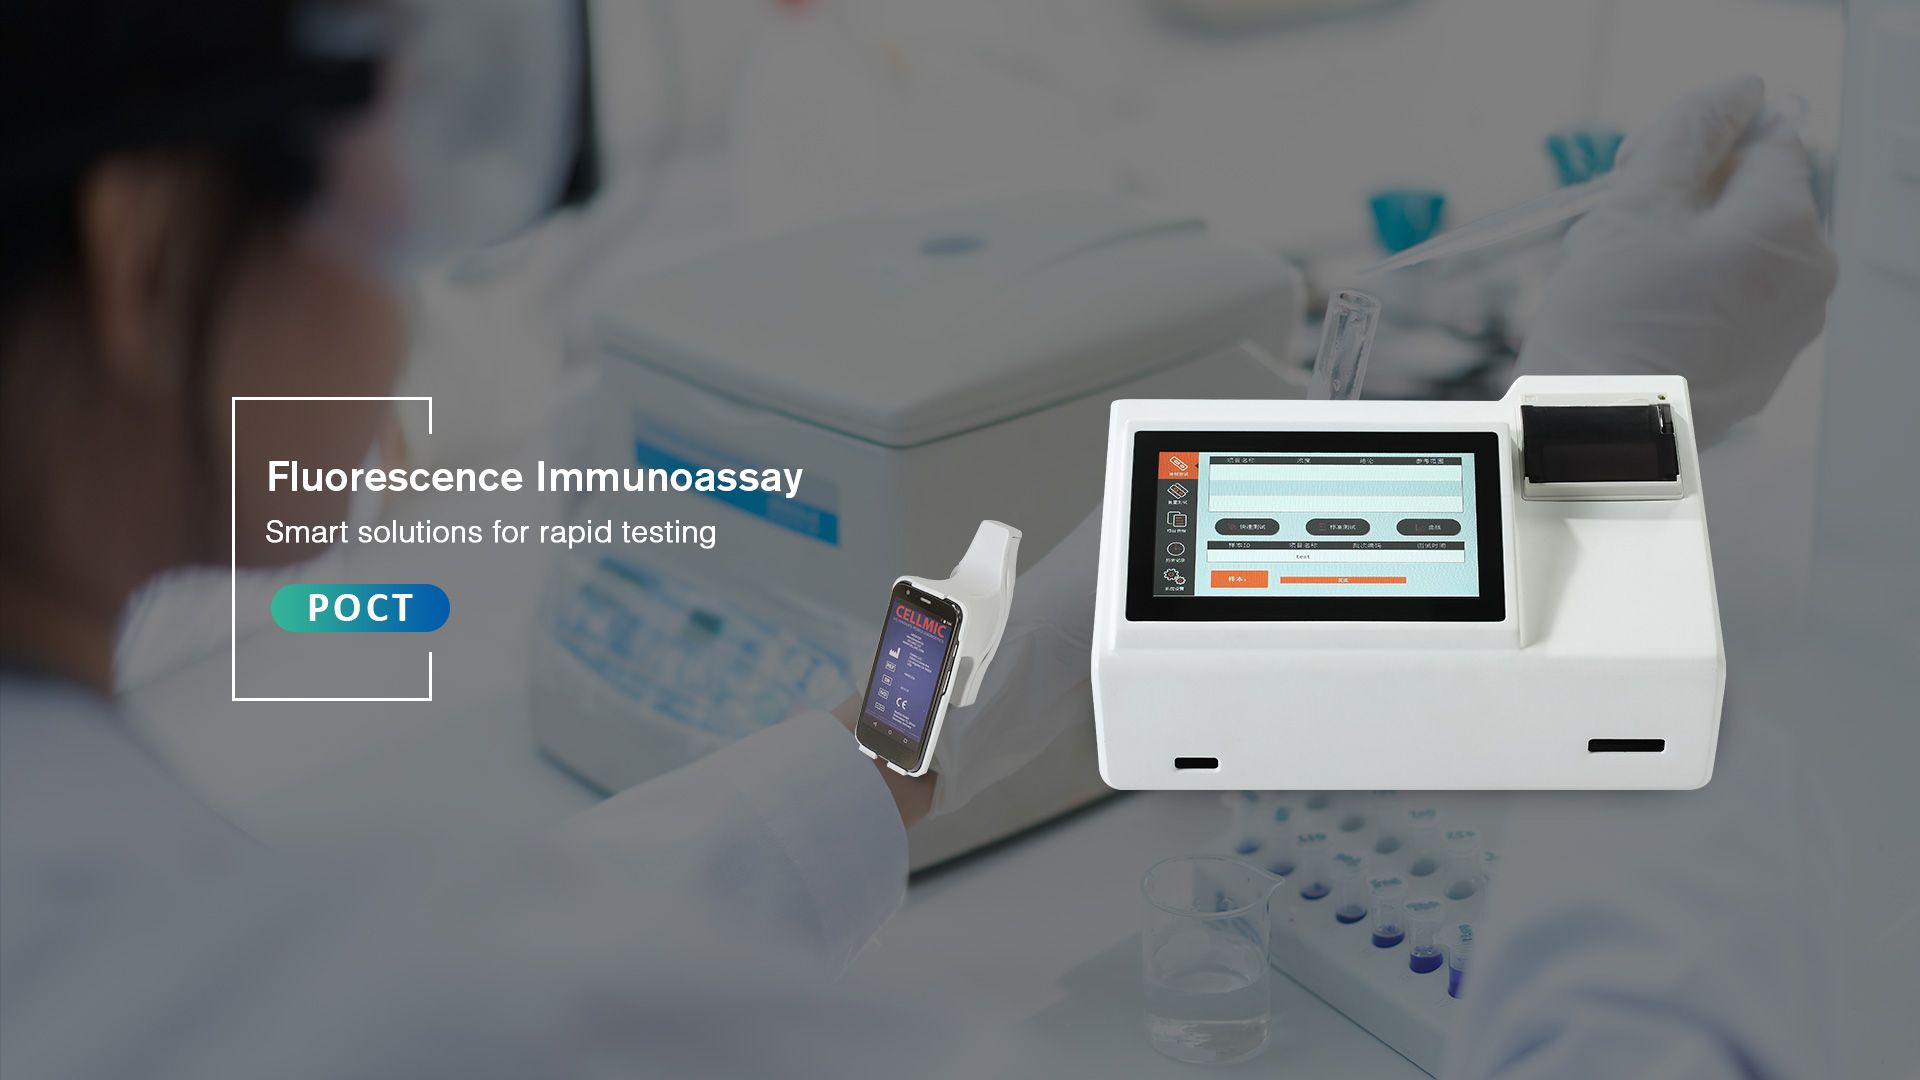 Smart Solutions for Rapid Testing